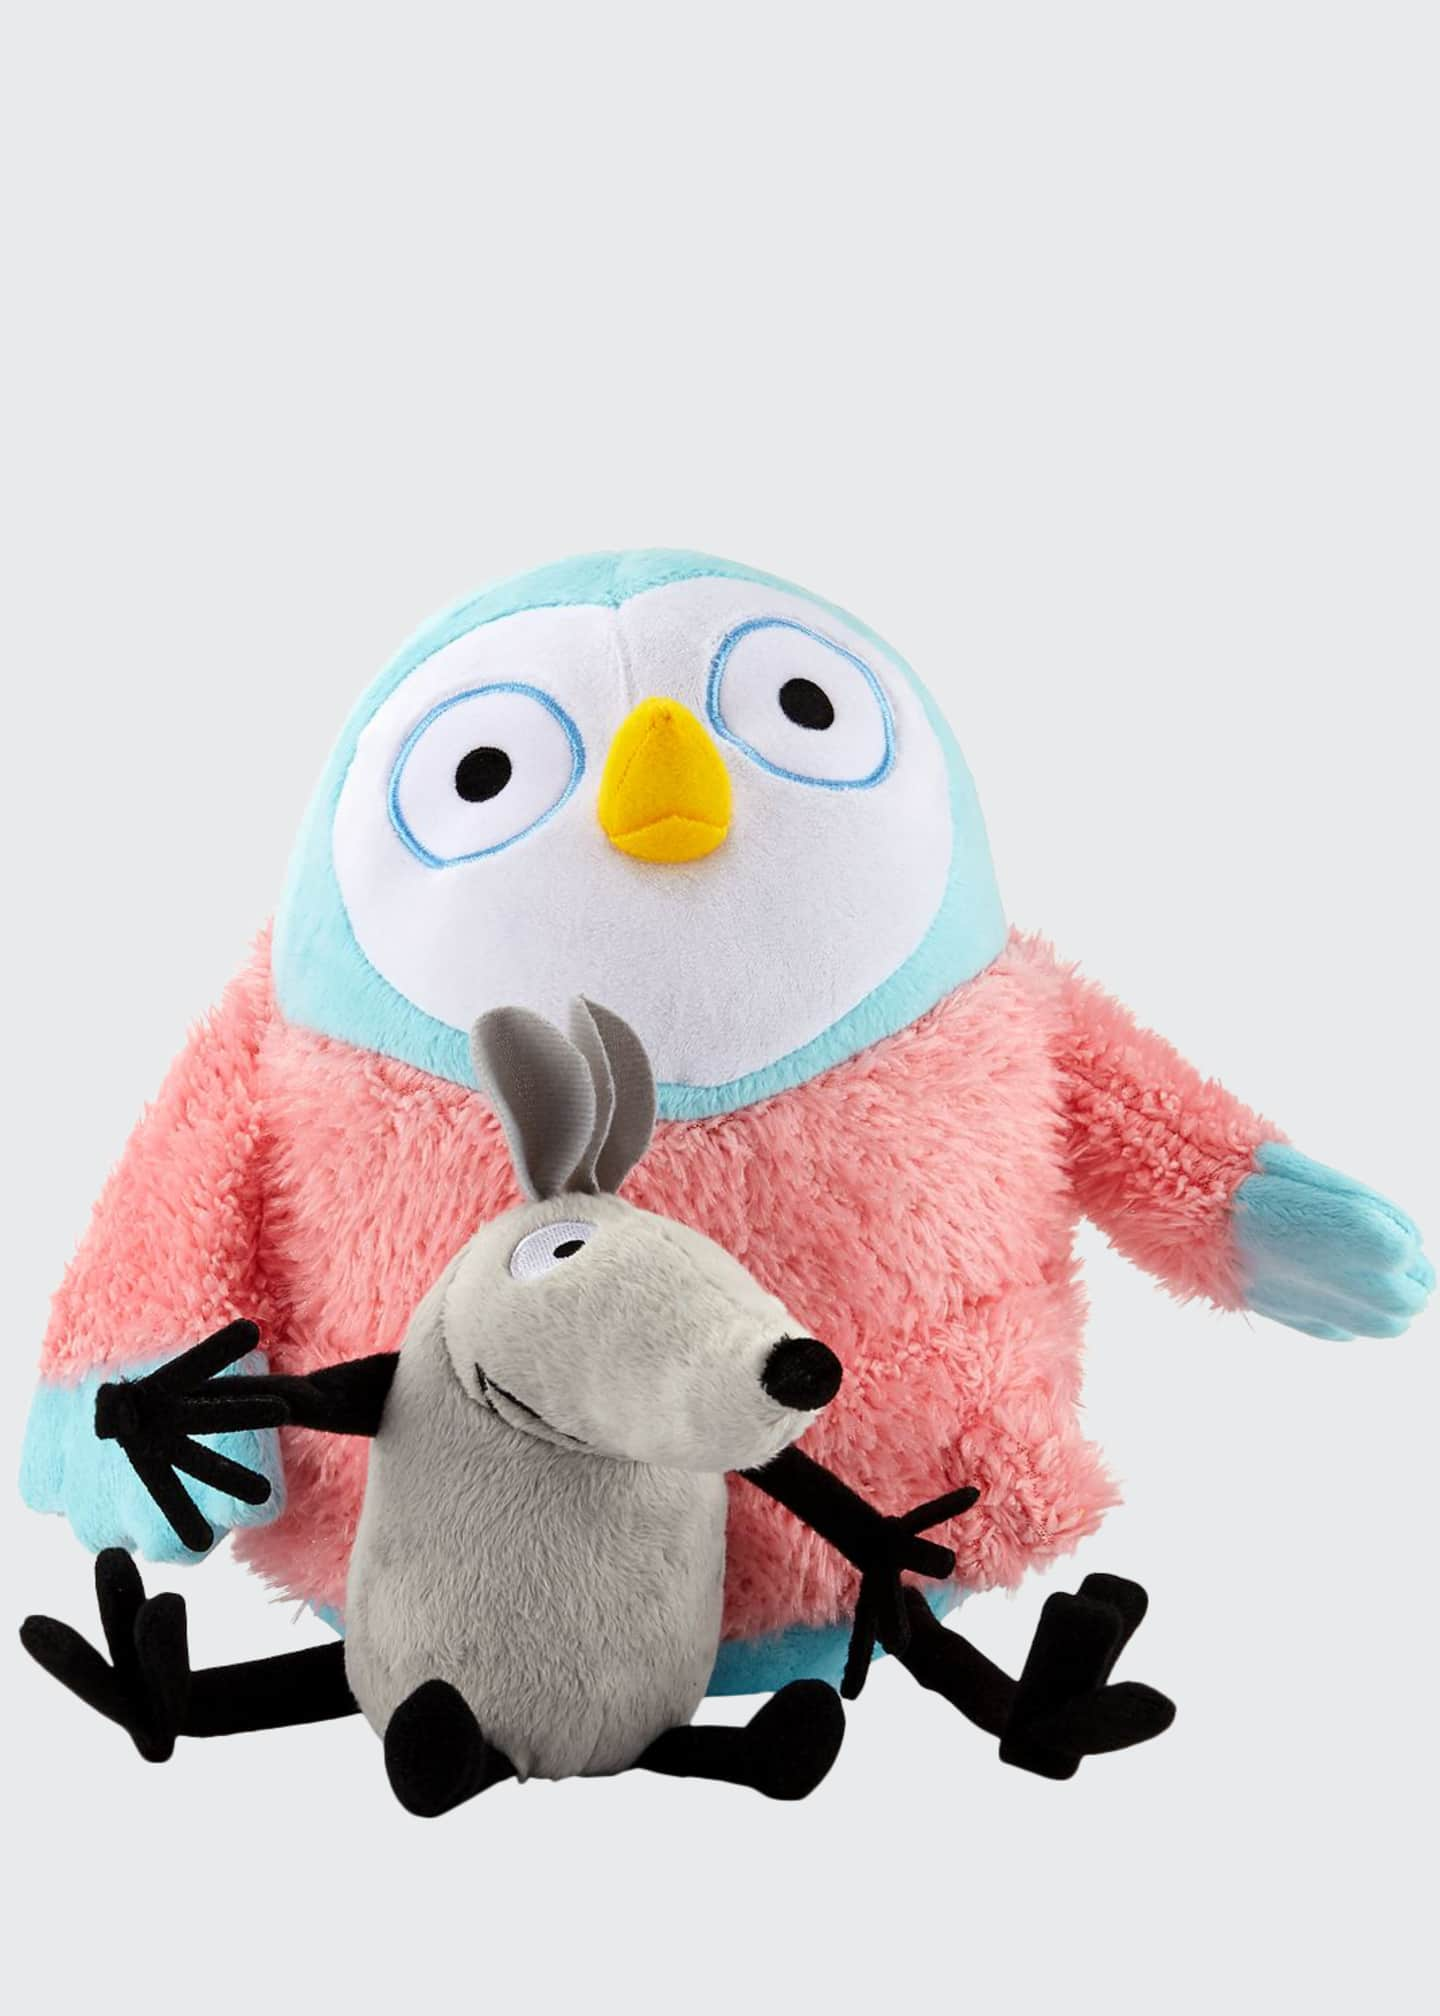 Image 1 of 1: Greg Pizzoli's Owl and Noise Soft Toy Pair